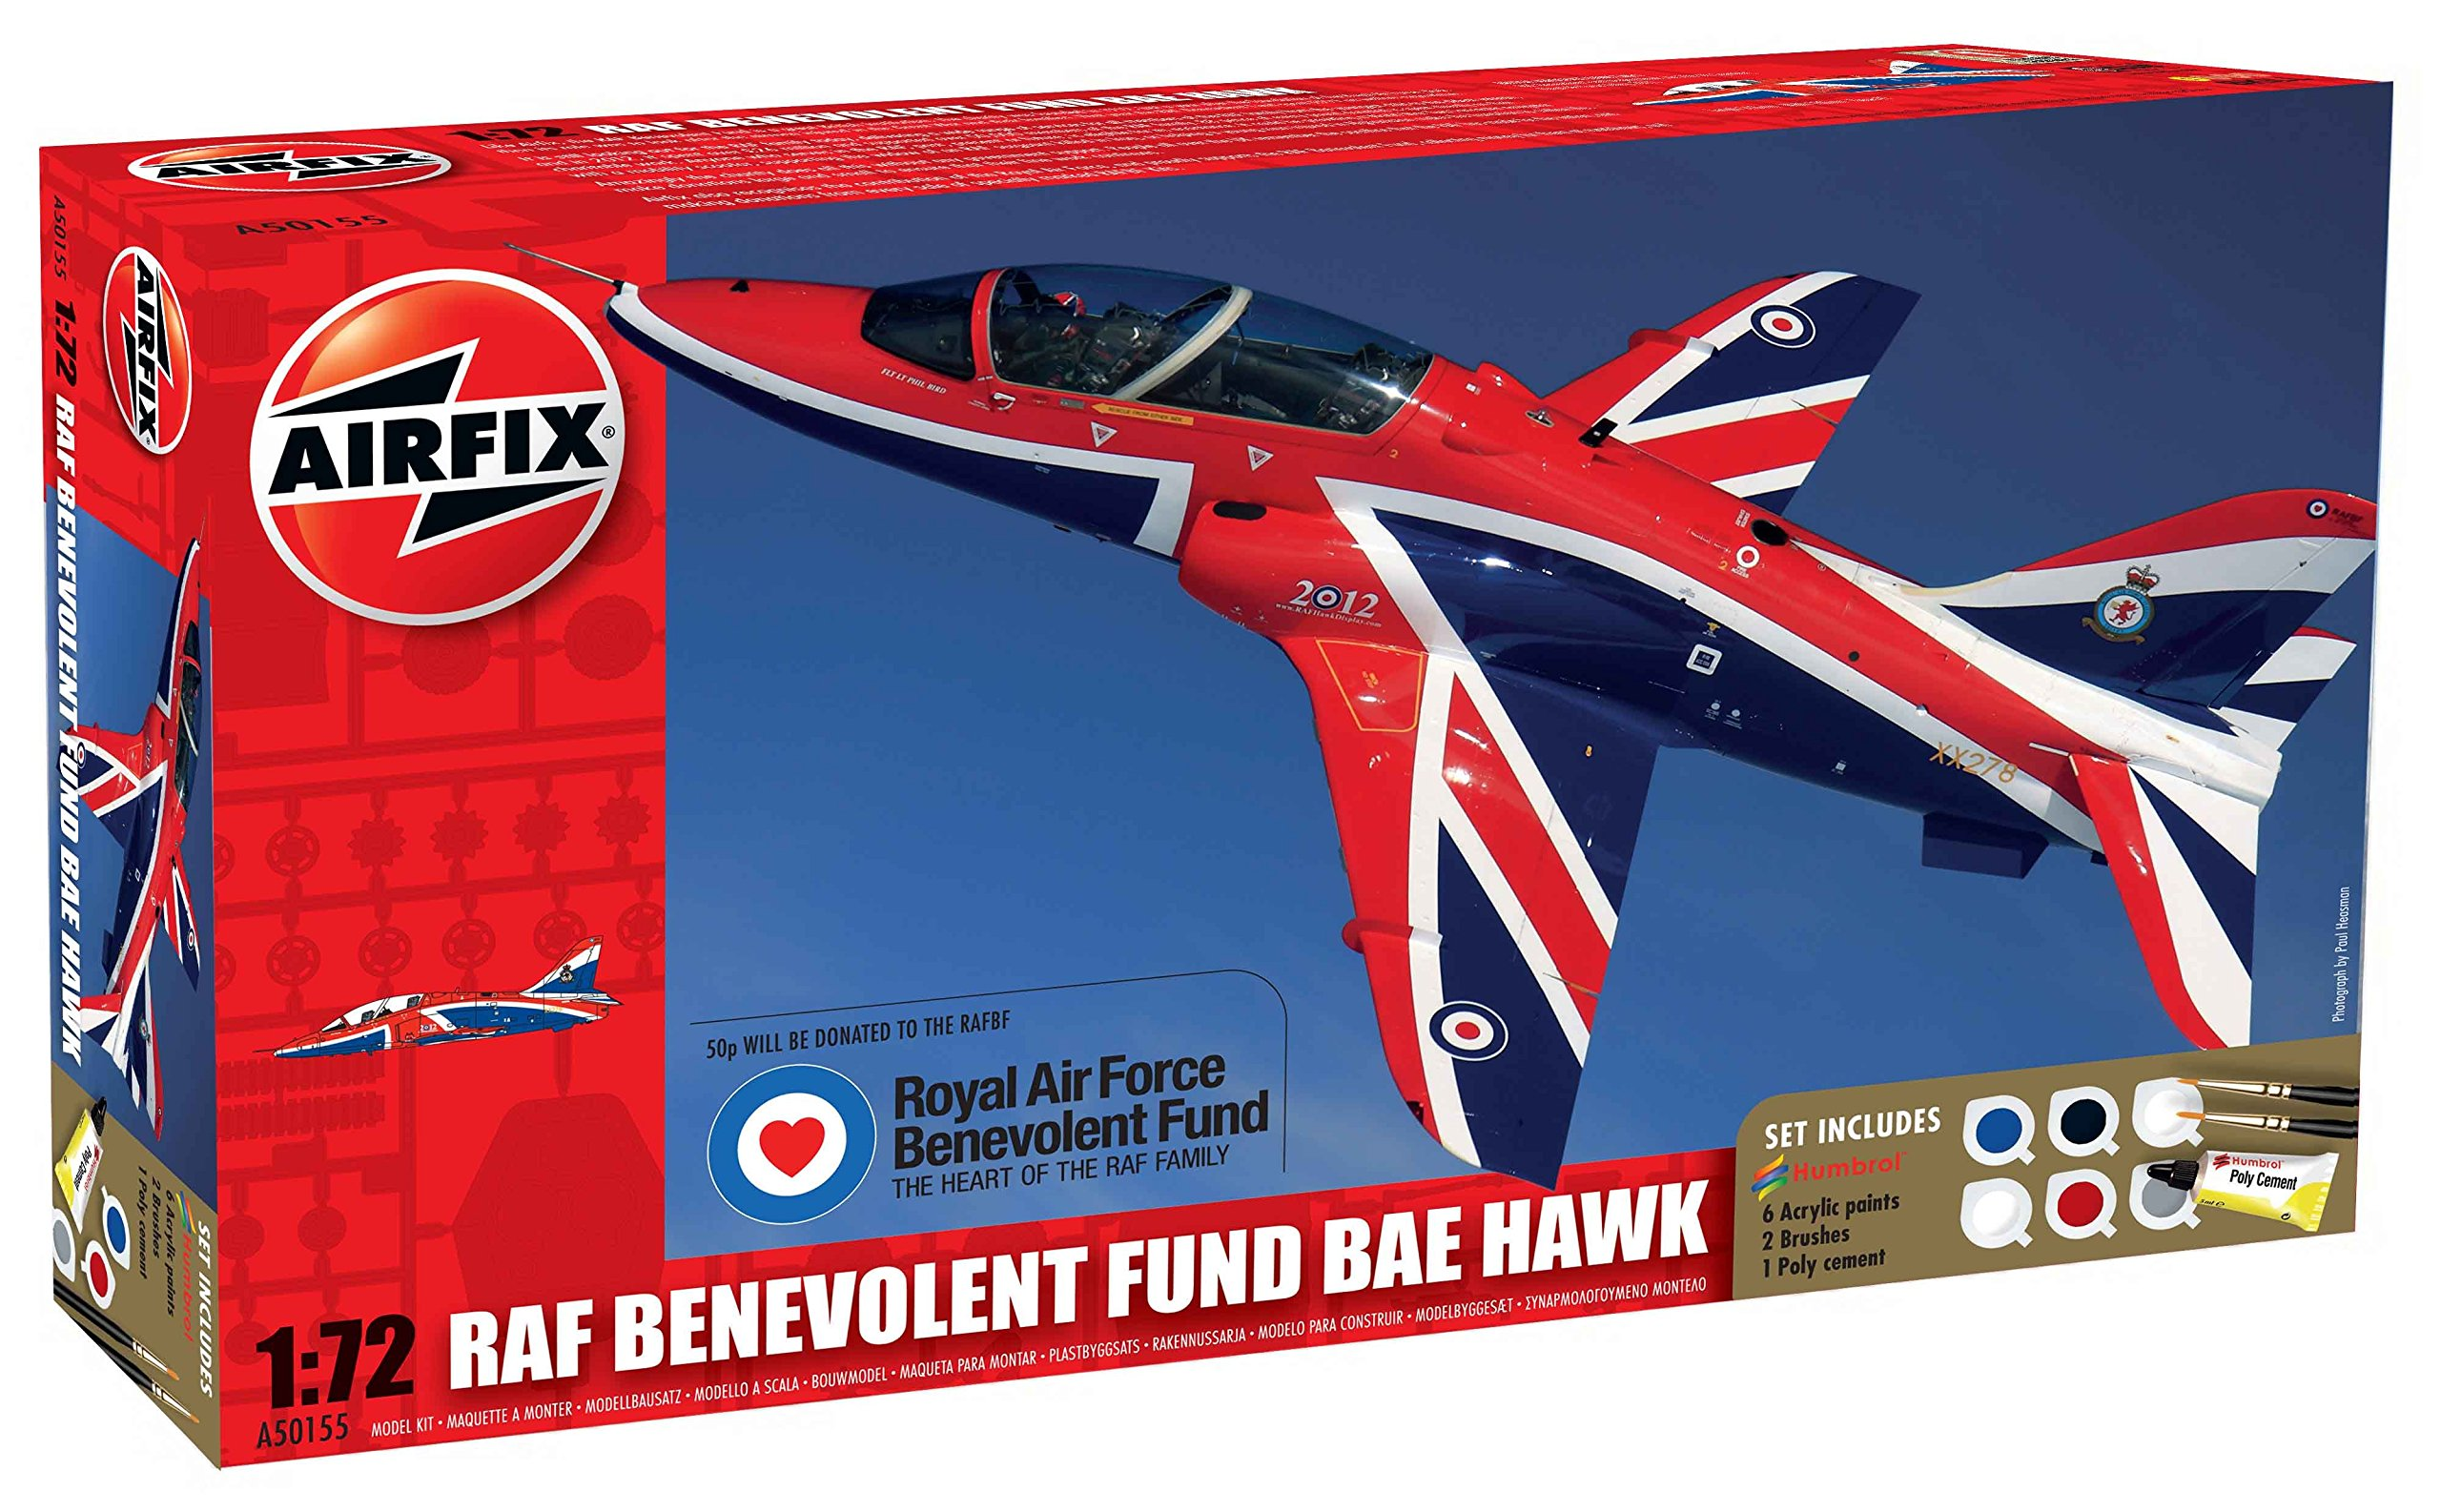 The RAF Display Team Hawk